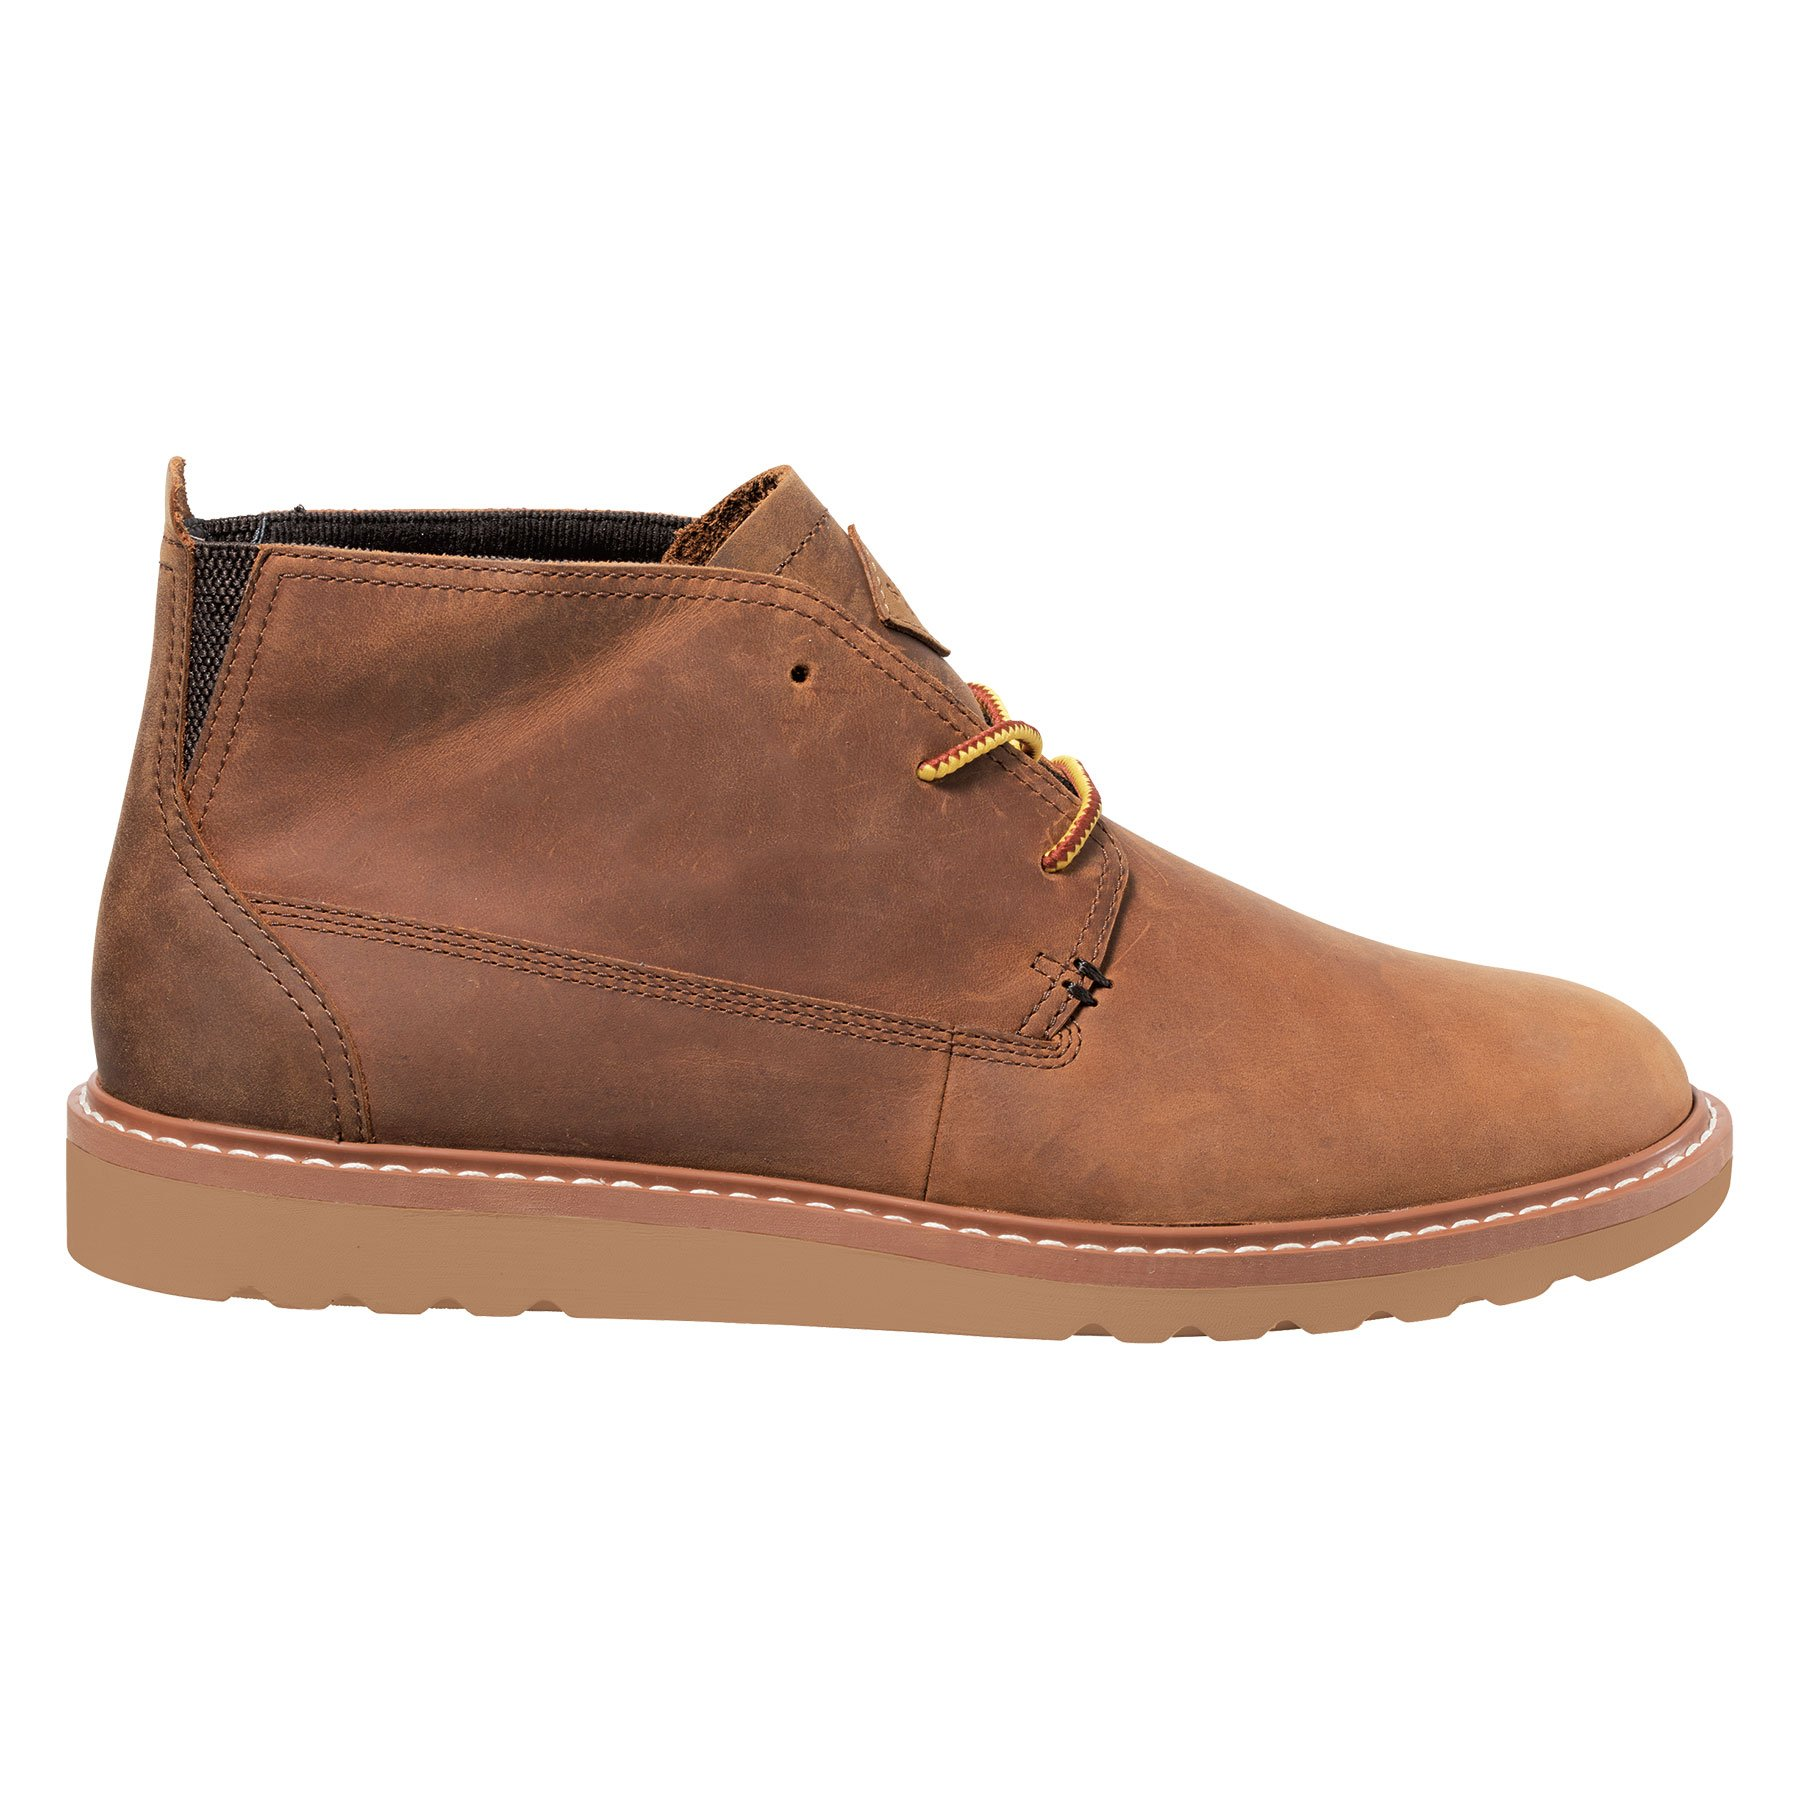 Reef Men's Voyage Le Chukka Boot, Brown, 11 M US